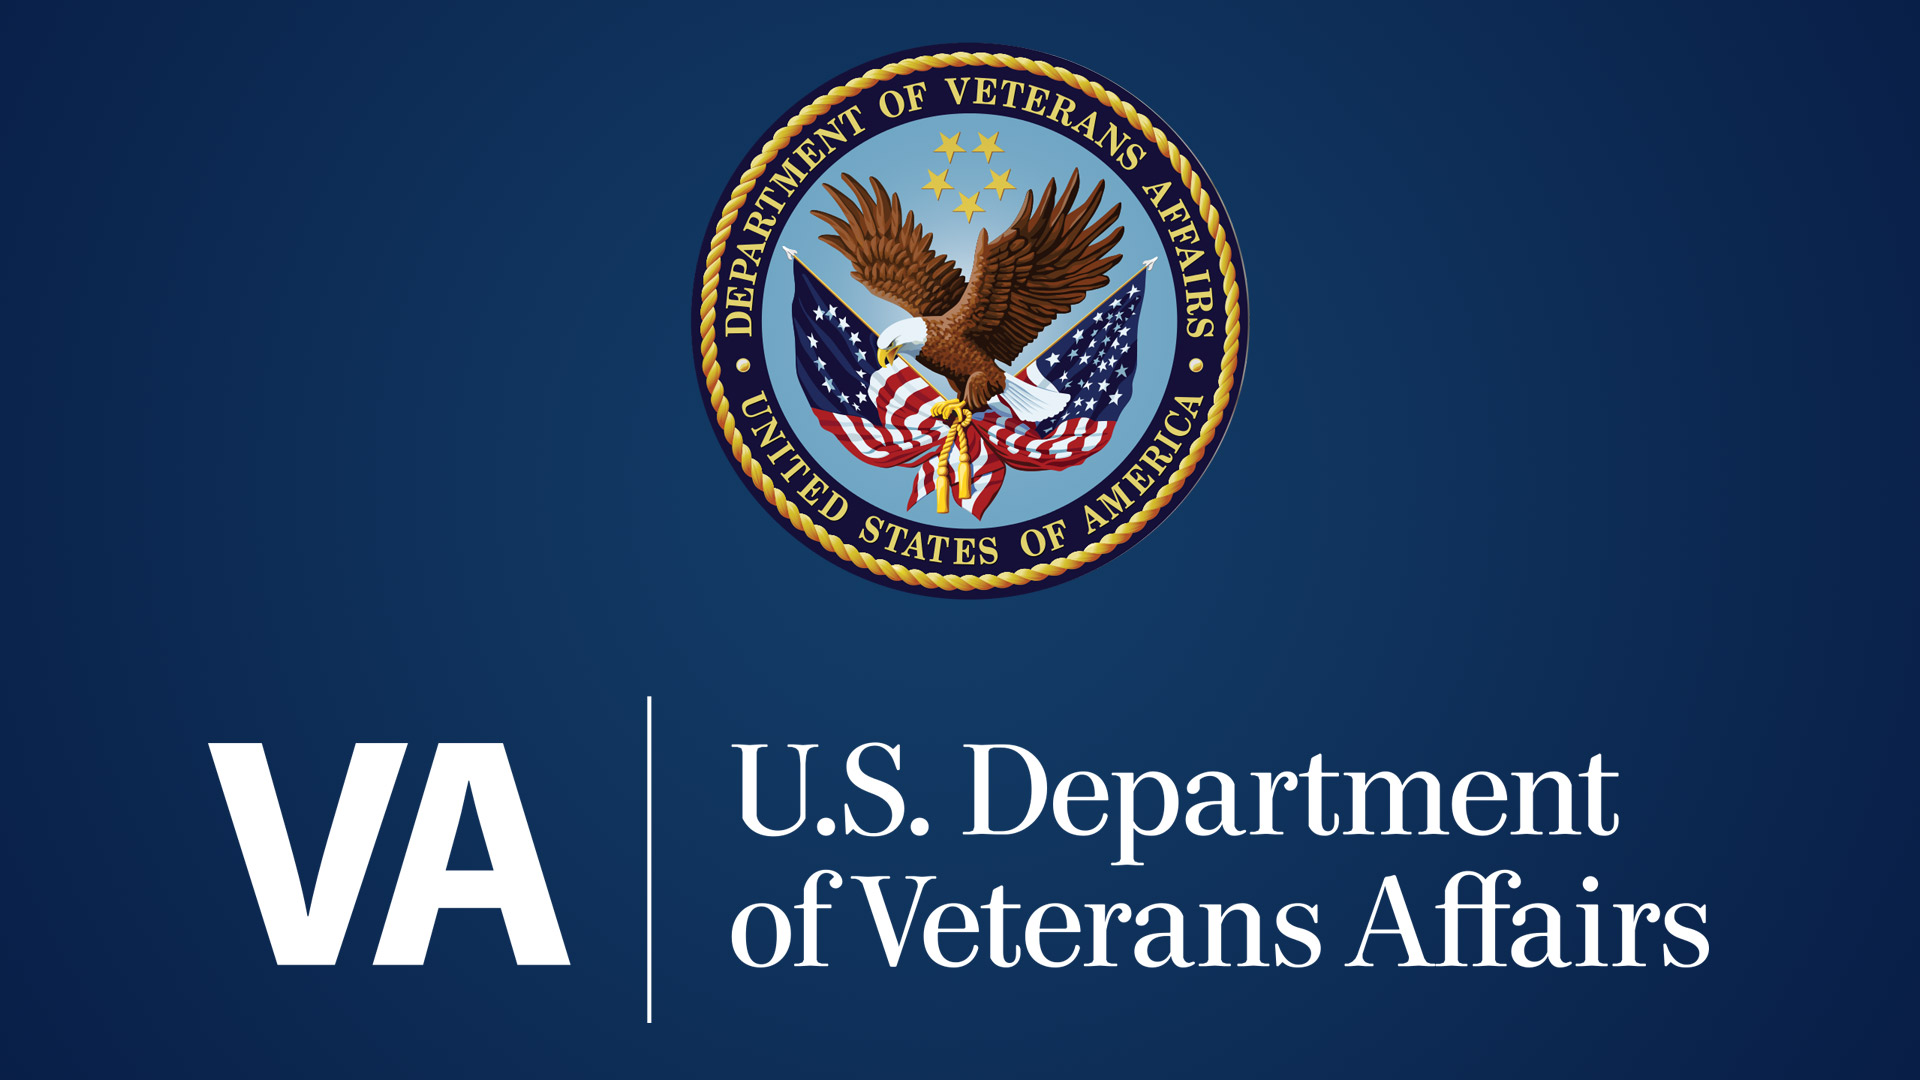 The logo for the U.S. Department of Veterans Affairs.